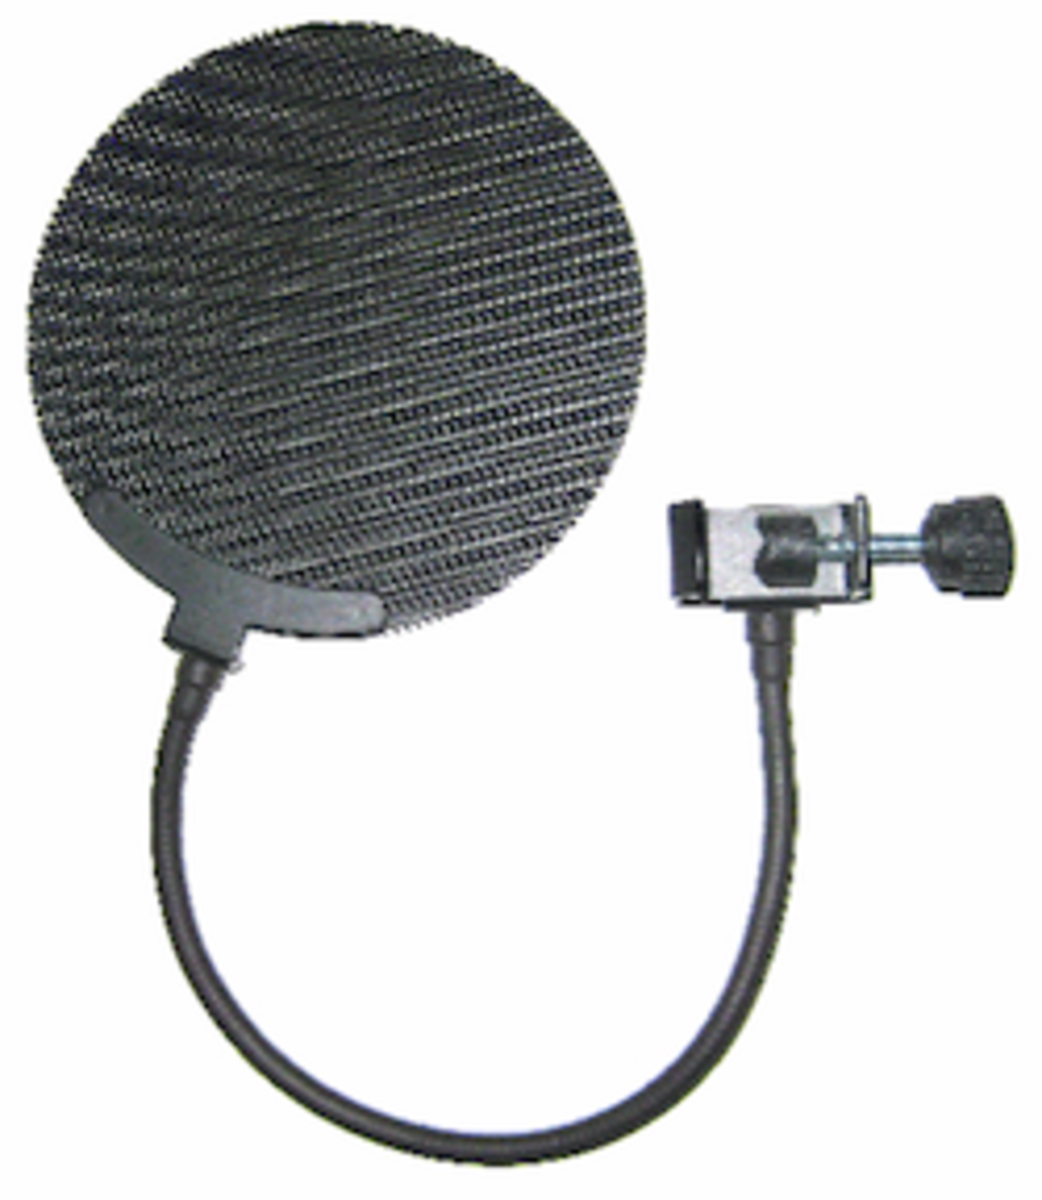 Windscreen/pop filter